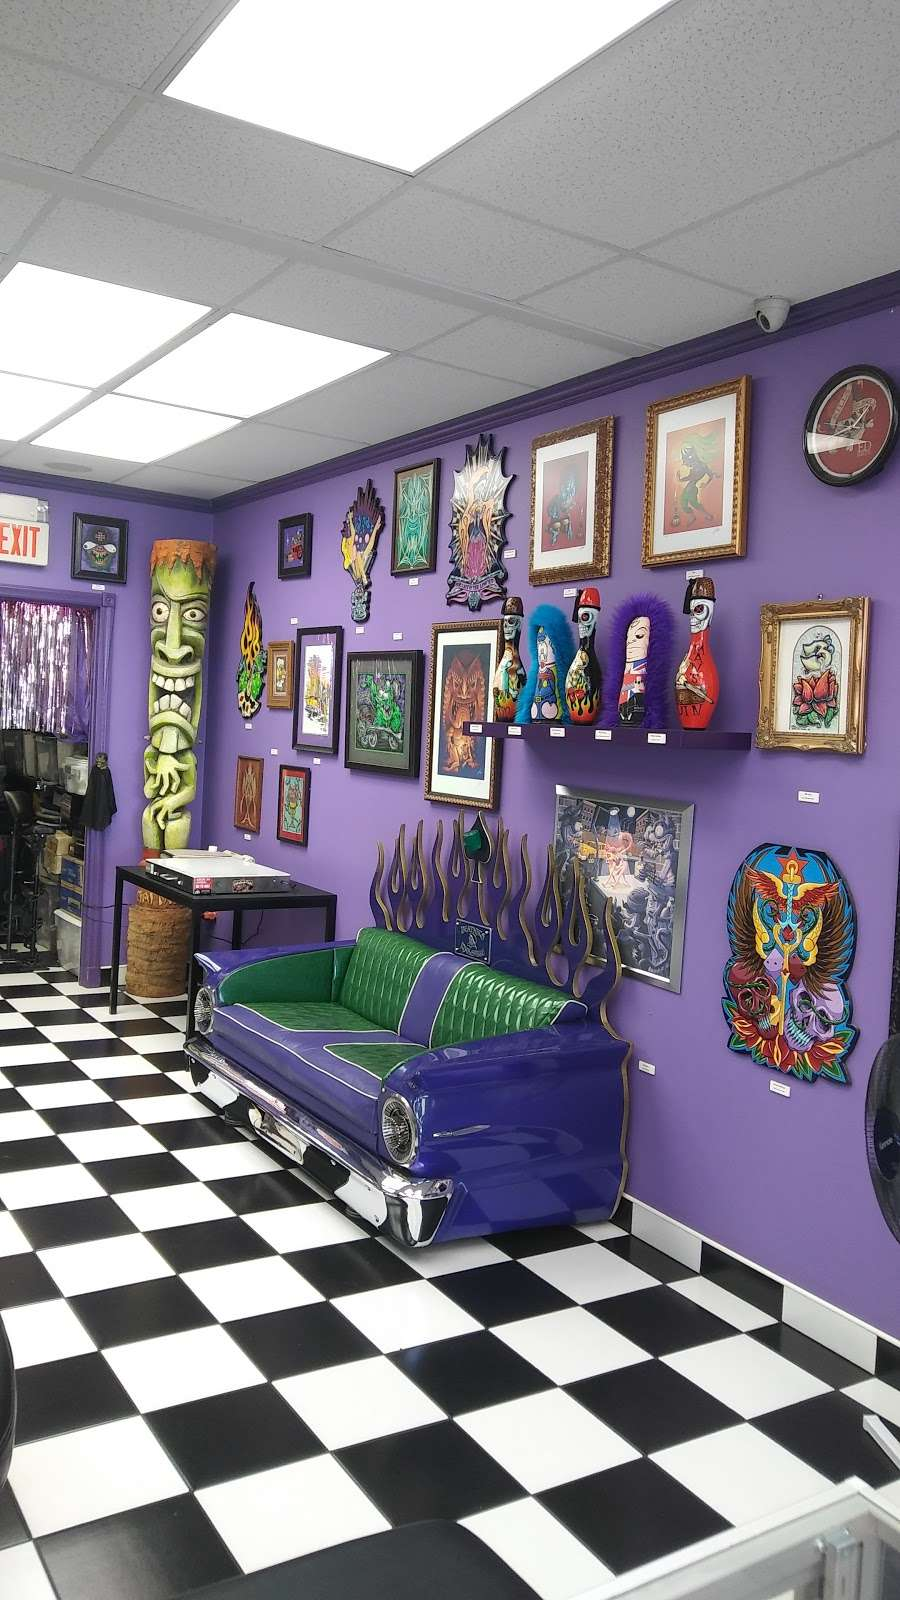 Screamin Ink Tattoo Studio - store  | Photo 1 of 9 | Address: 34-07 Broadway, Fair Lawn, NJ 07410, USA | Phone: (201) 797-7858